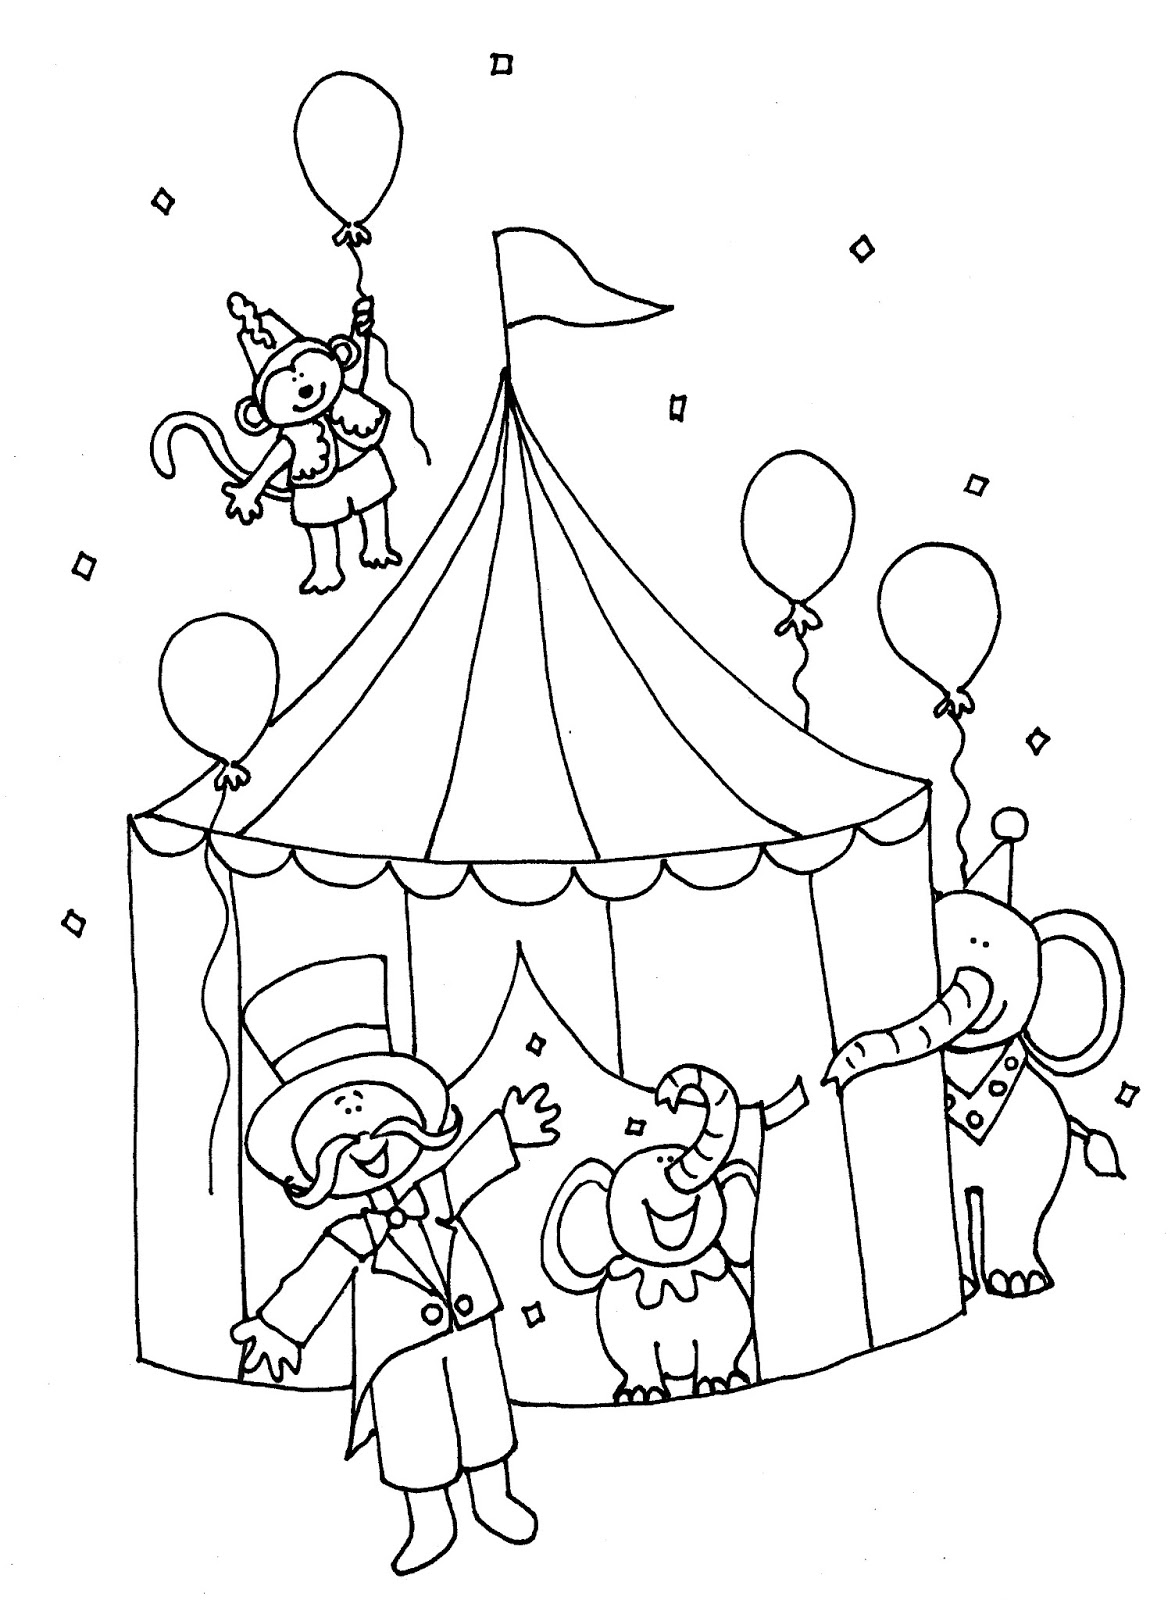 circus tent coloring pages preschool - photo#17